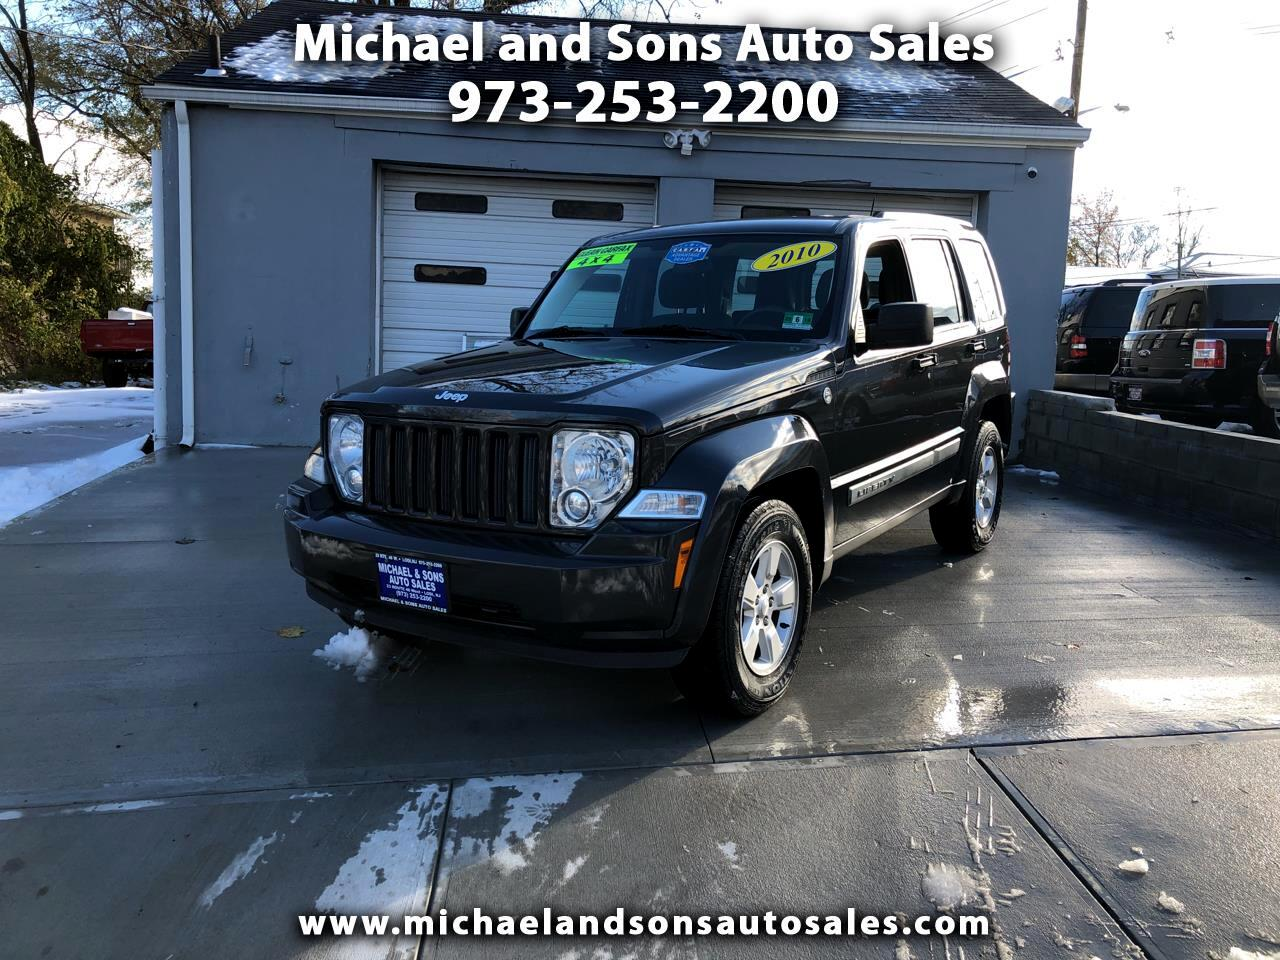 michael and sons auto sales lodi nj | new & used cars trucks sales